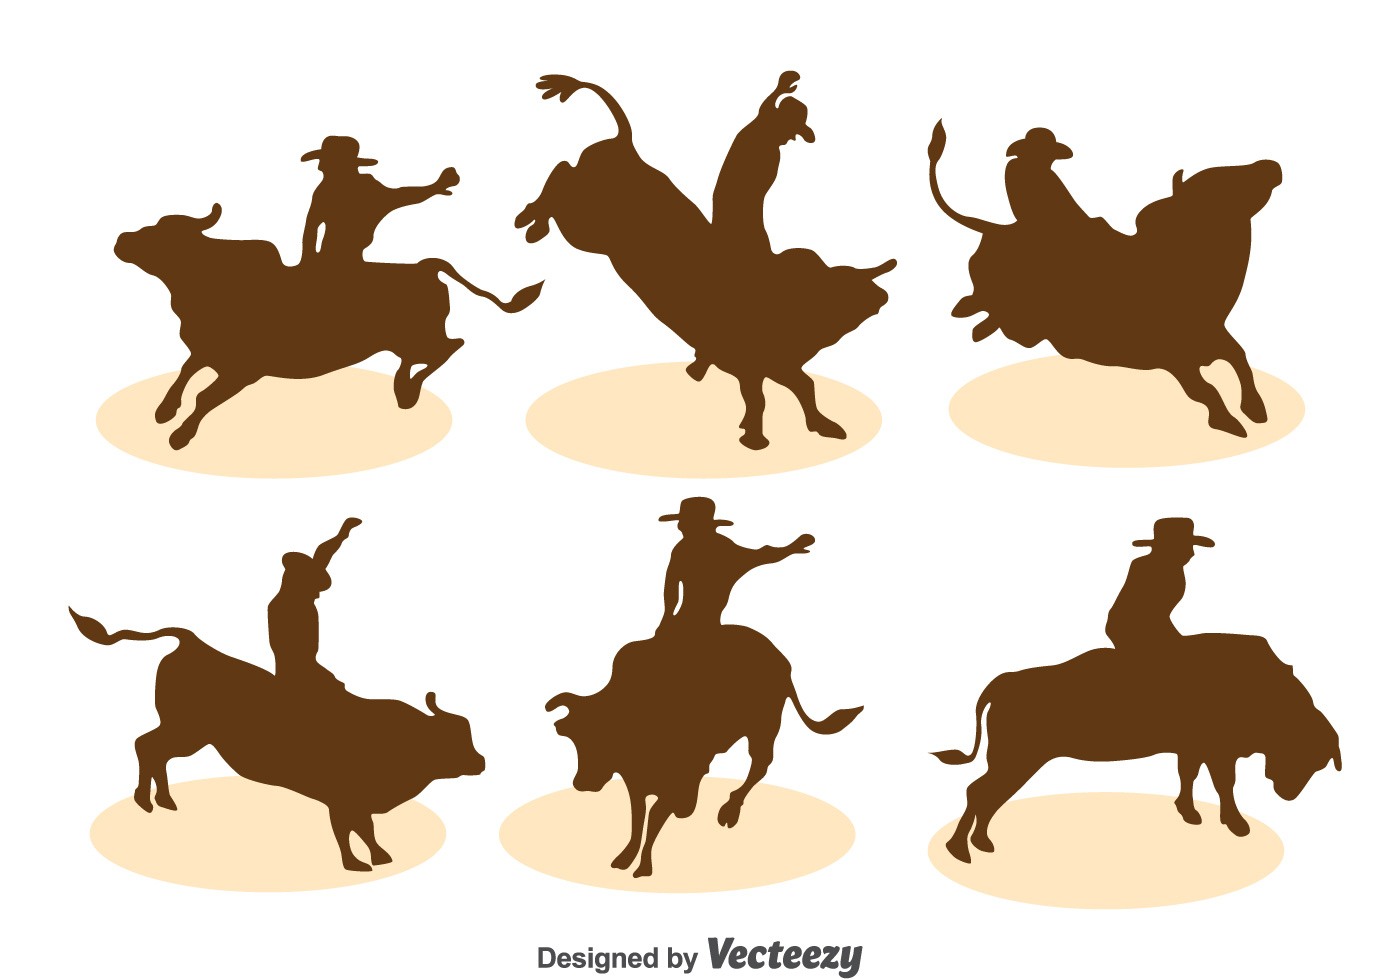 Bull Rider Silhouette Vector Set 125823 - Download Free ...